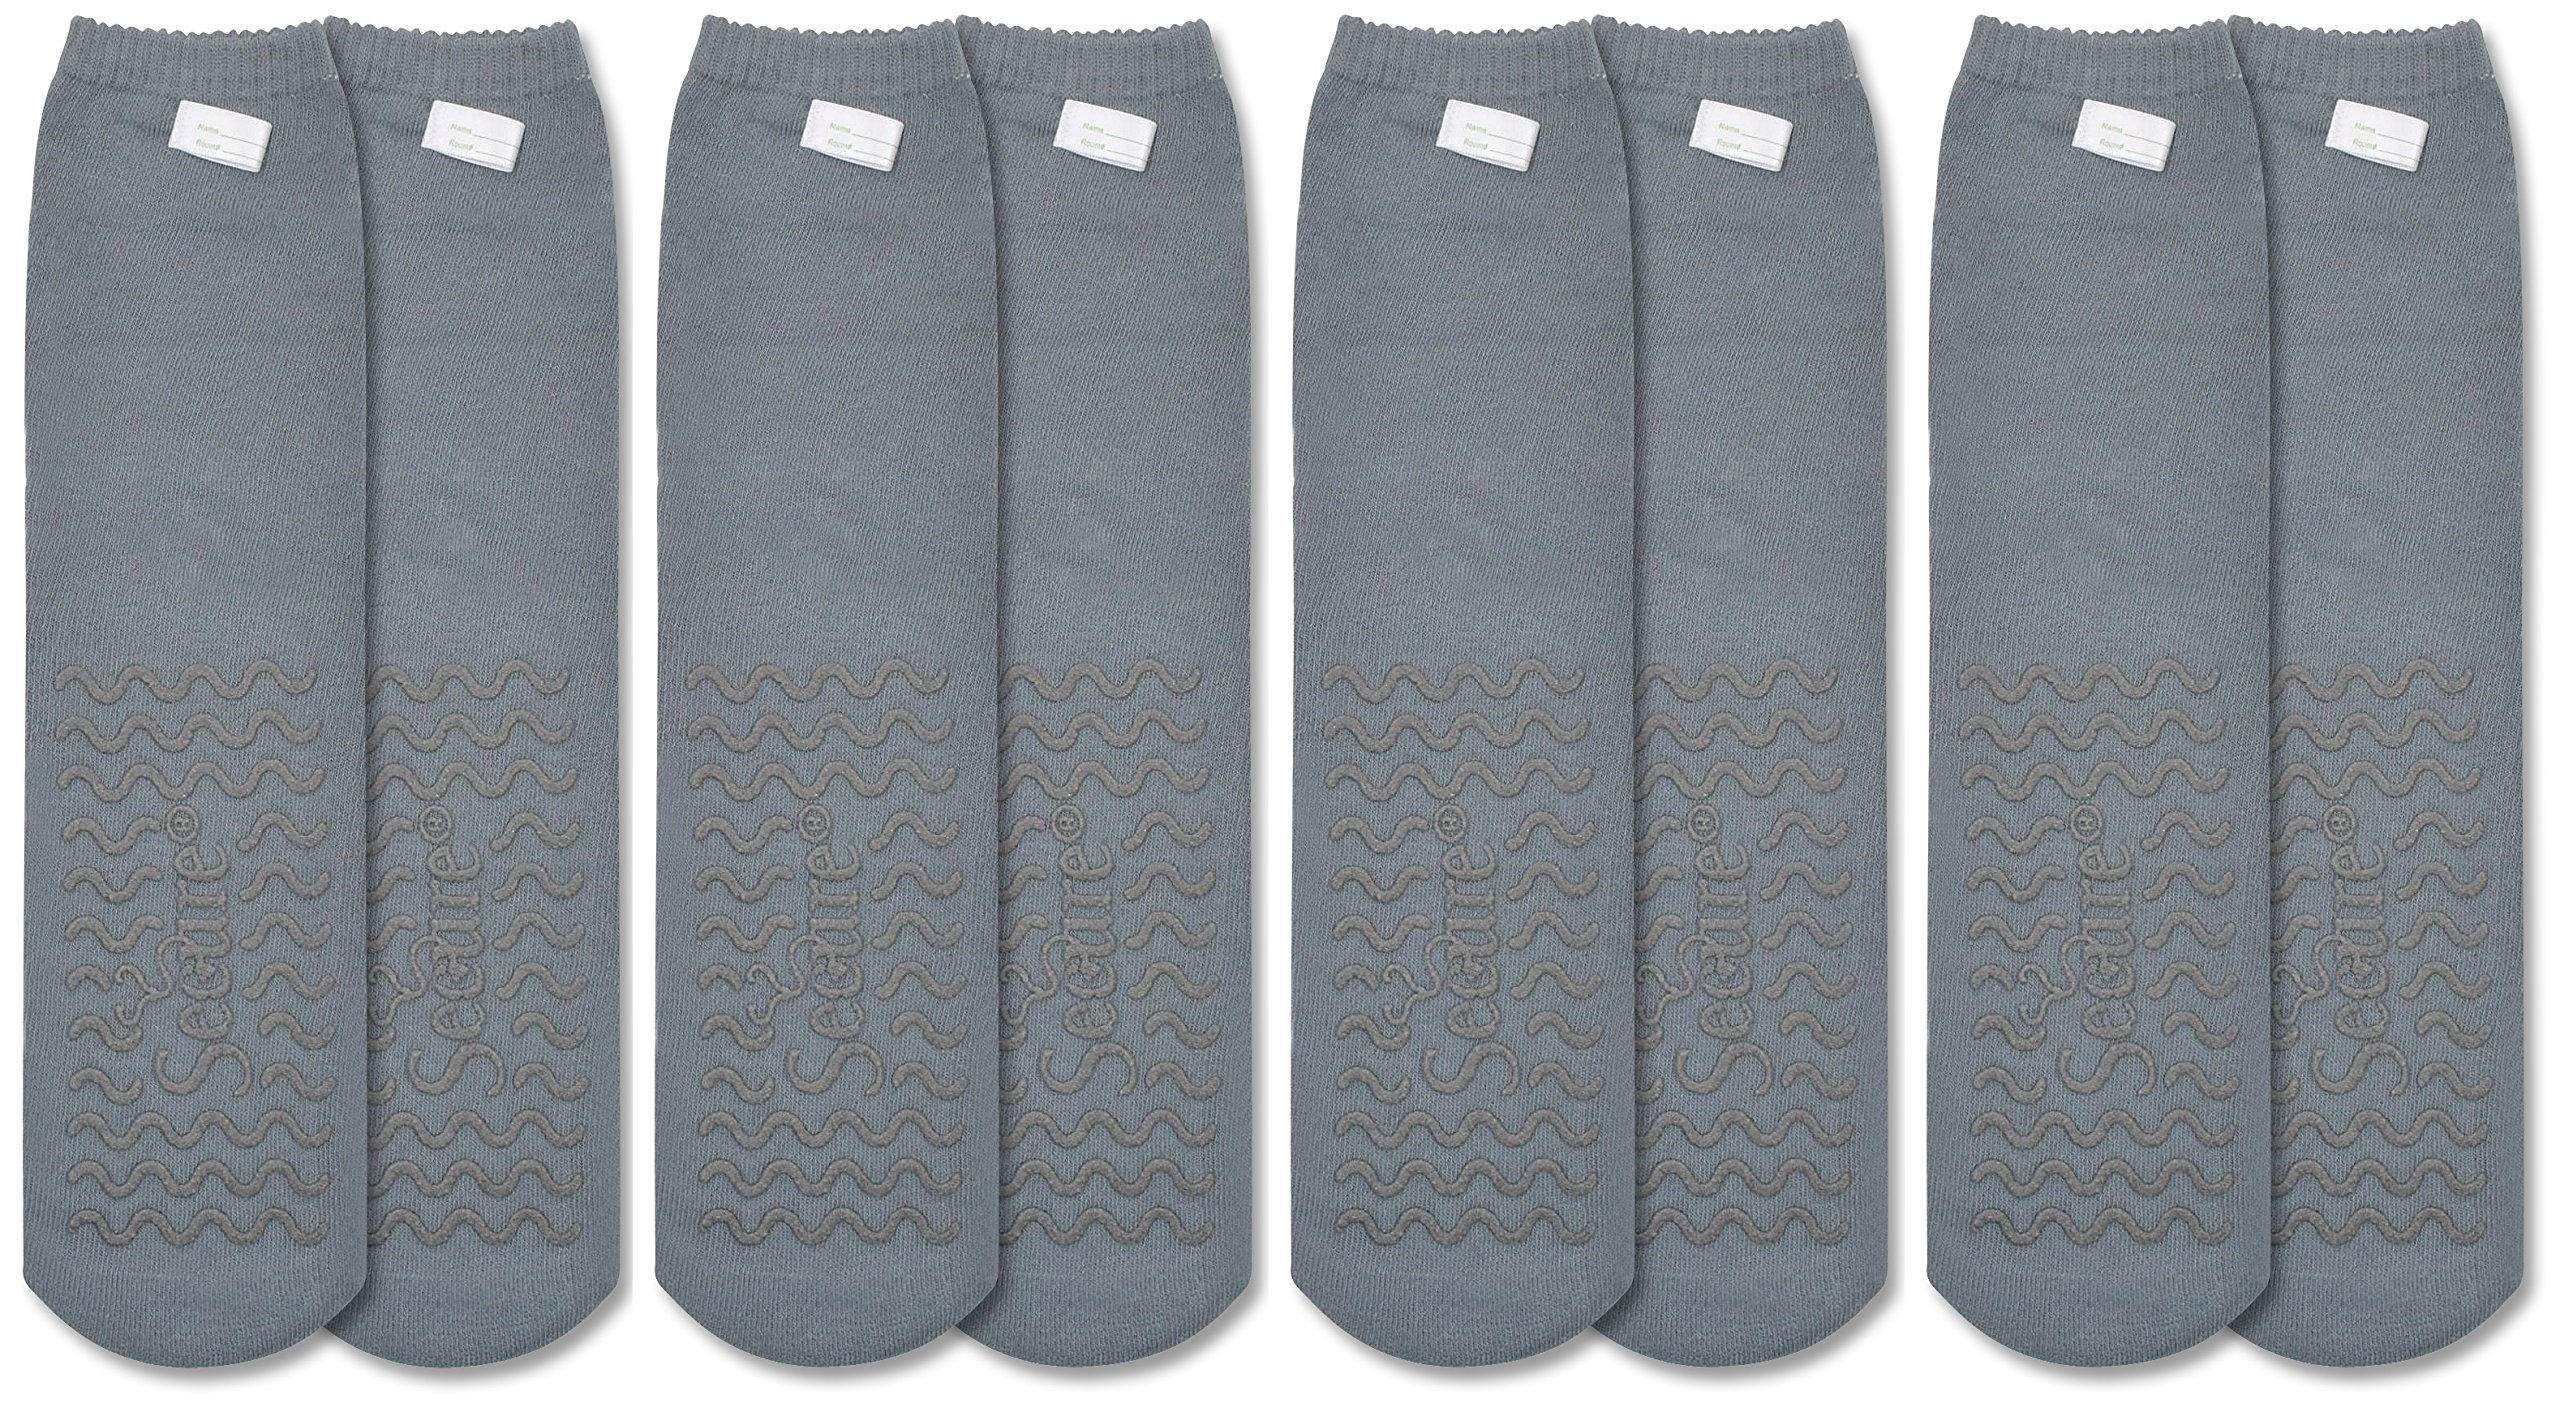 Secure (4 Pairs) Ultra Soft Non Slip Grip Slipper Socks, Gray - Fall Injury Prevention Hospital Tread Sock for Safety, Comfort and Warmth